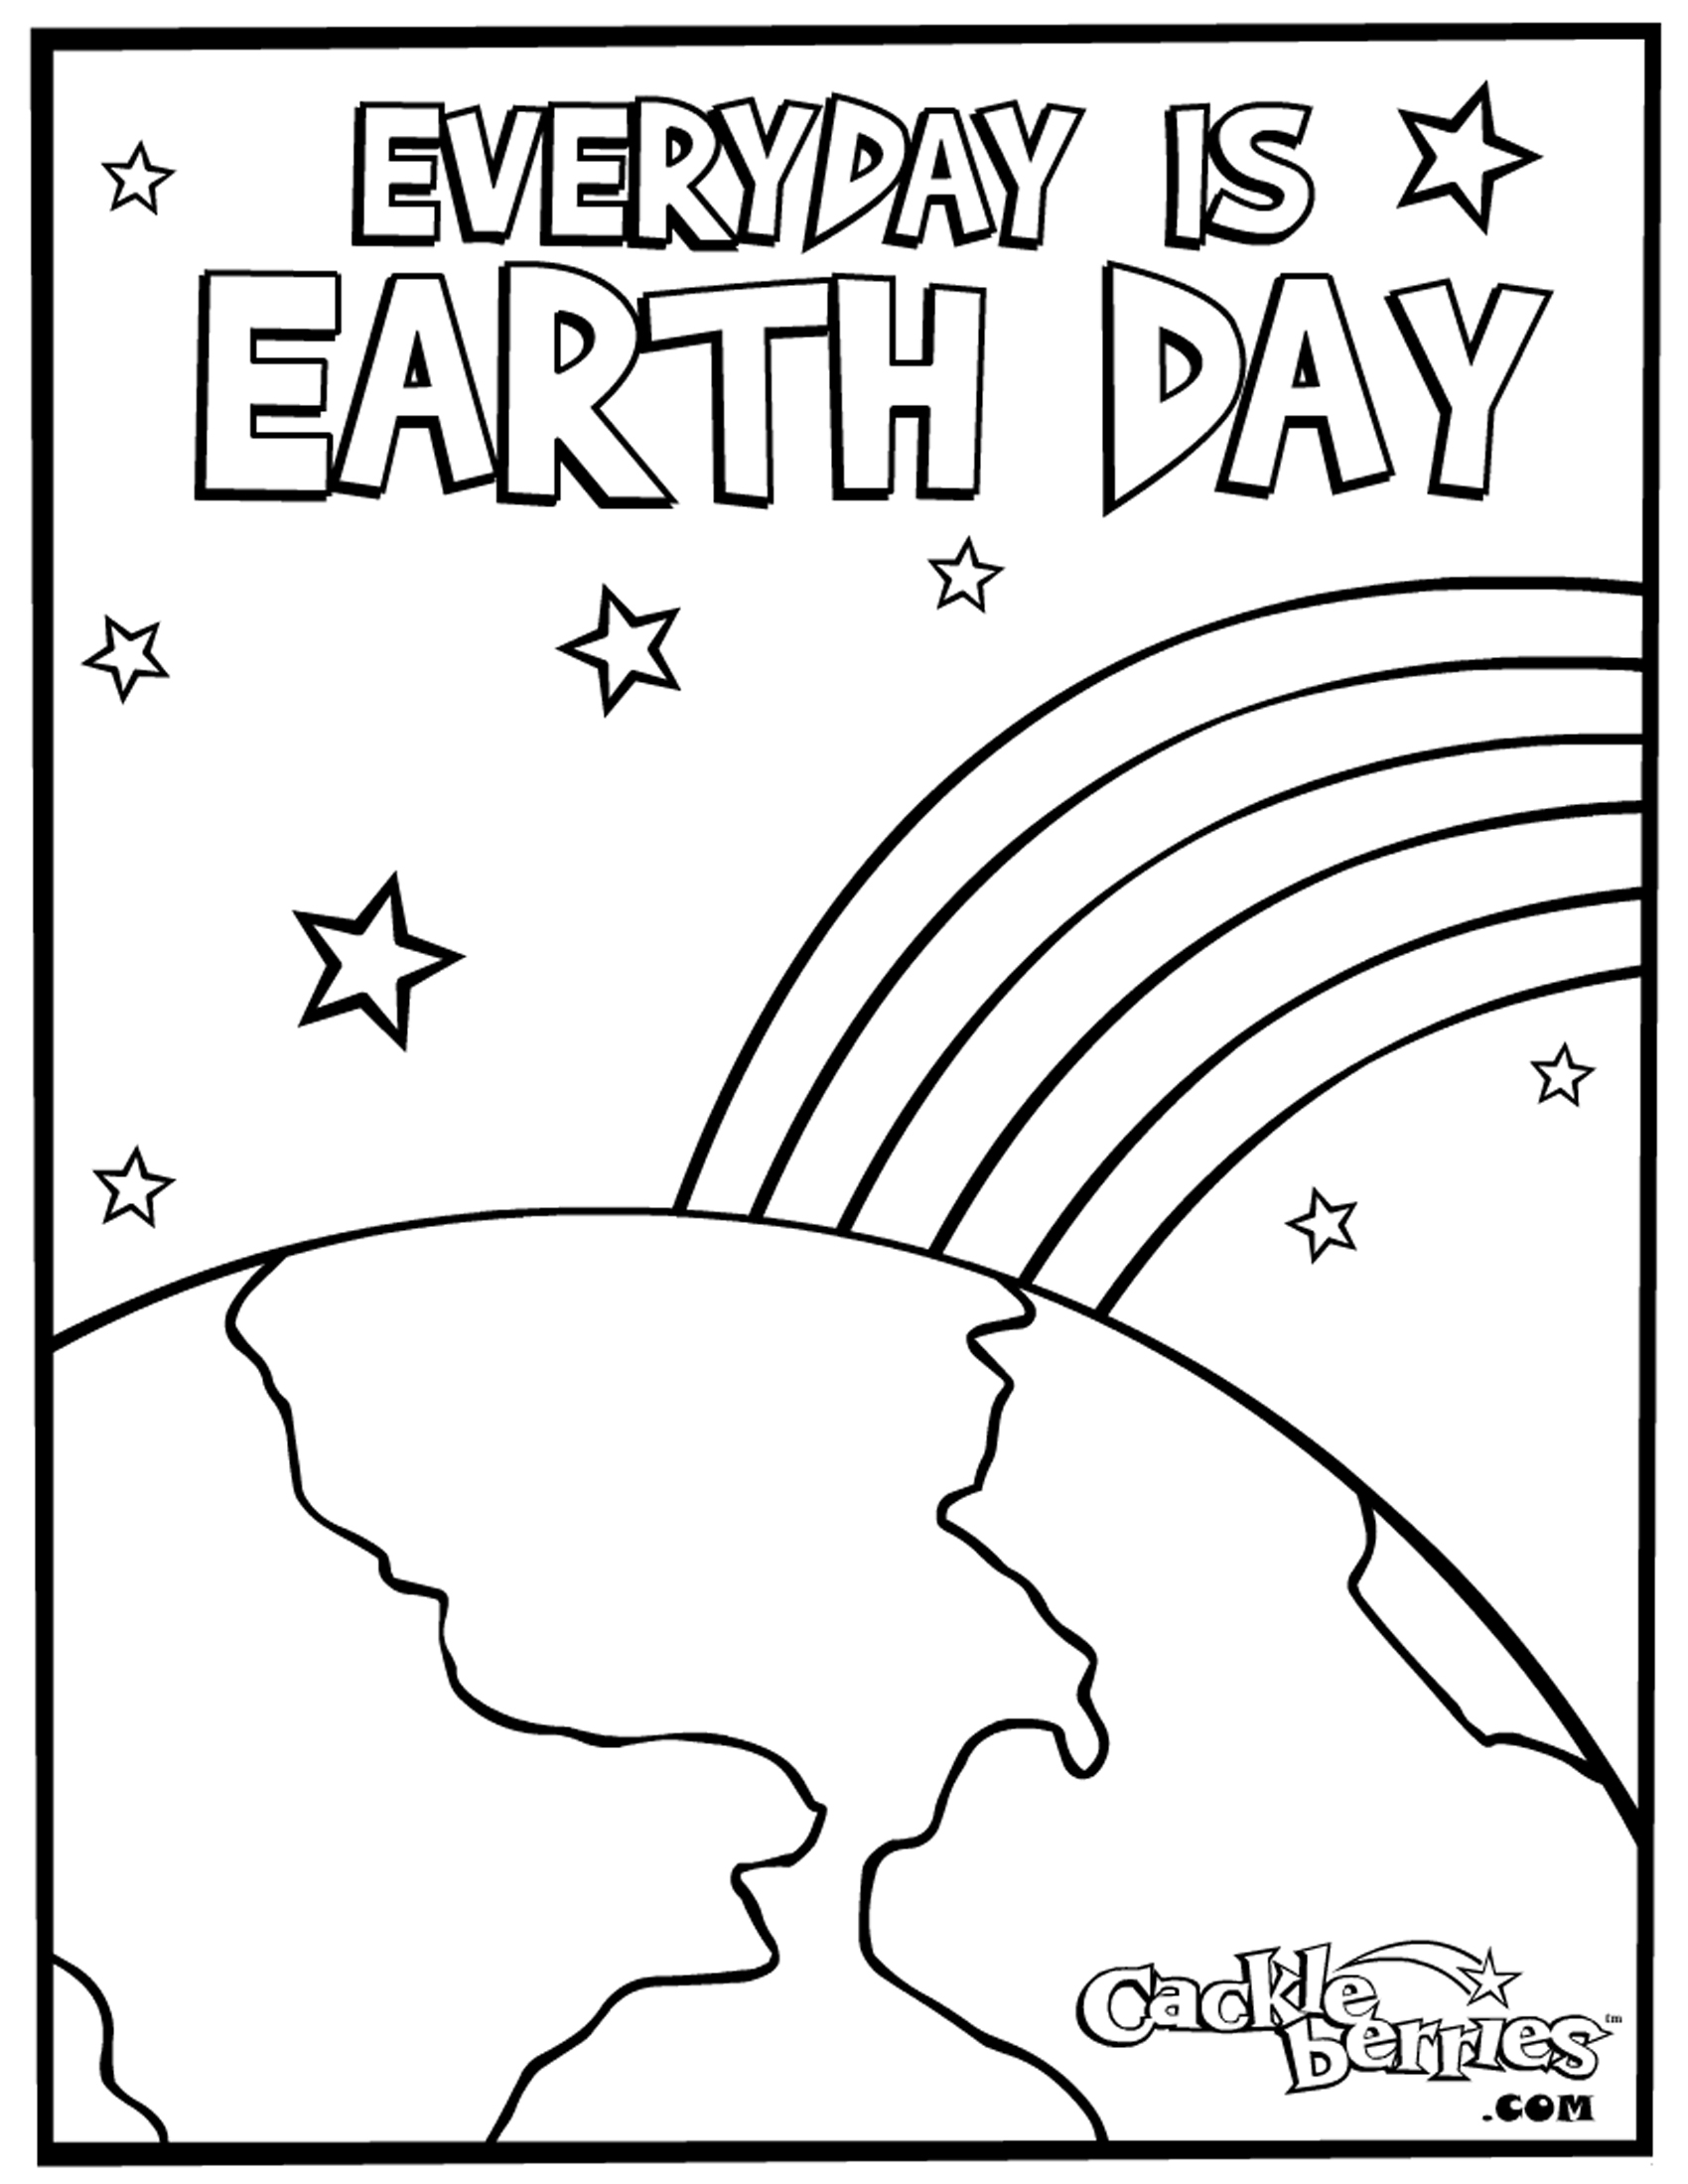 earth coloring pages free get this free earth coloring pages t29m7 free coloring pages earth